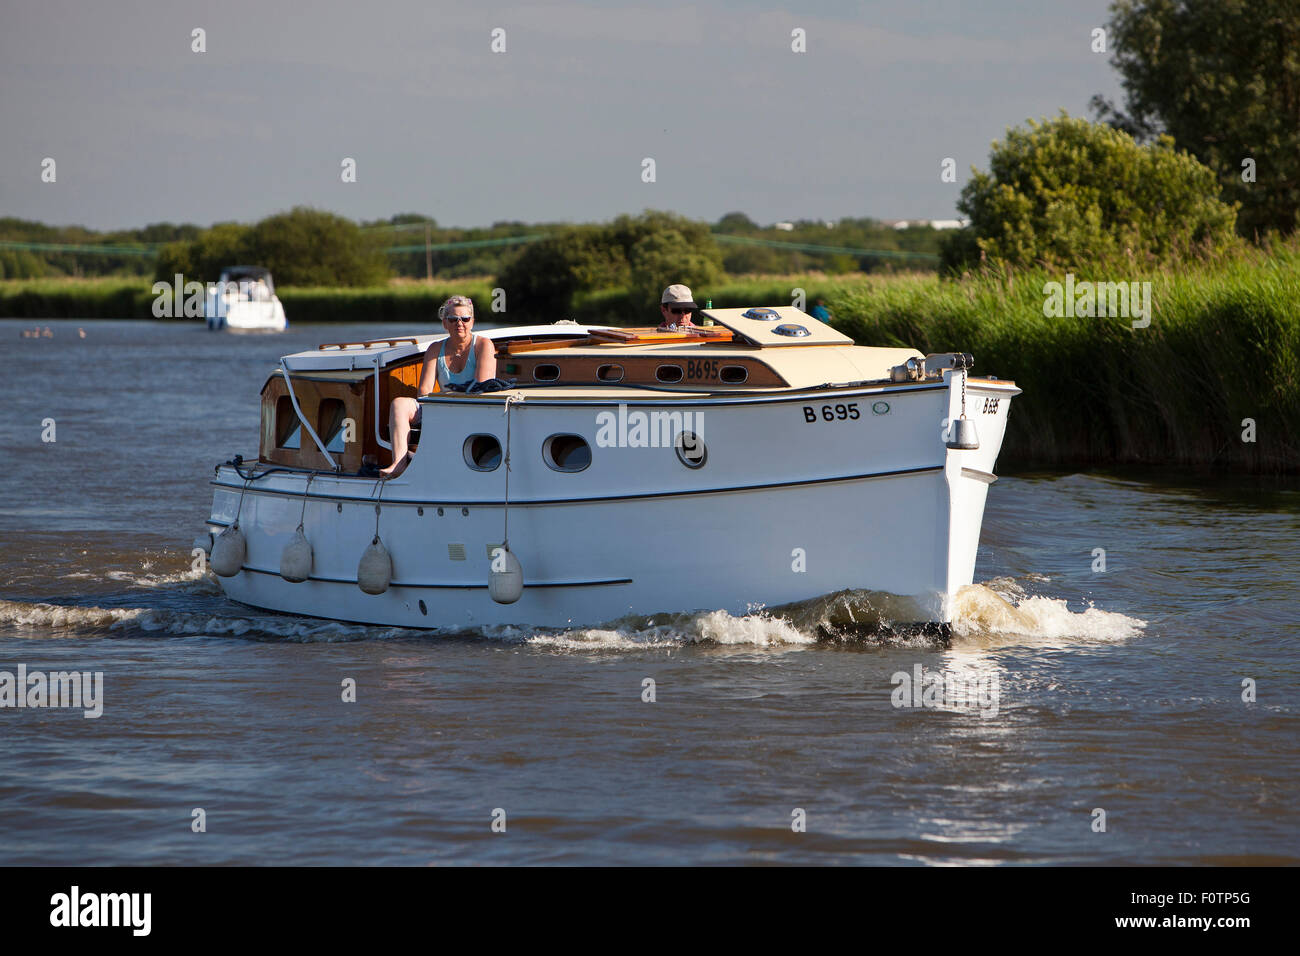 Vintage motor cruiser on the Norfolk Broads - Stock Image